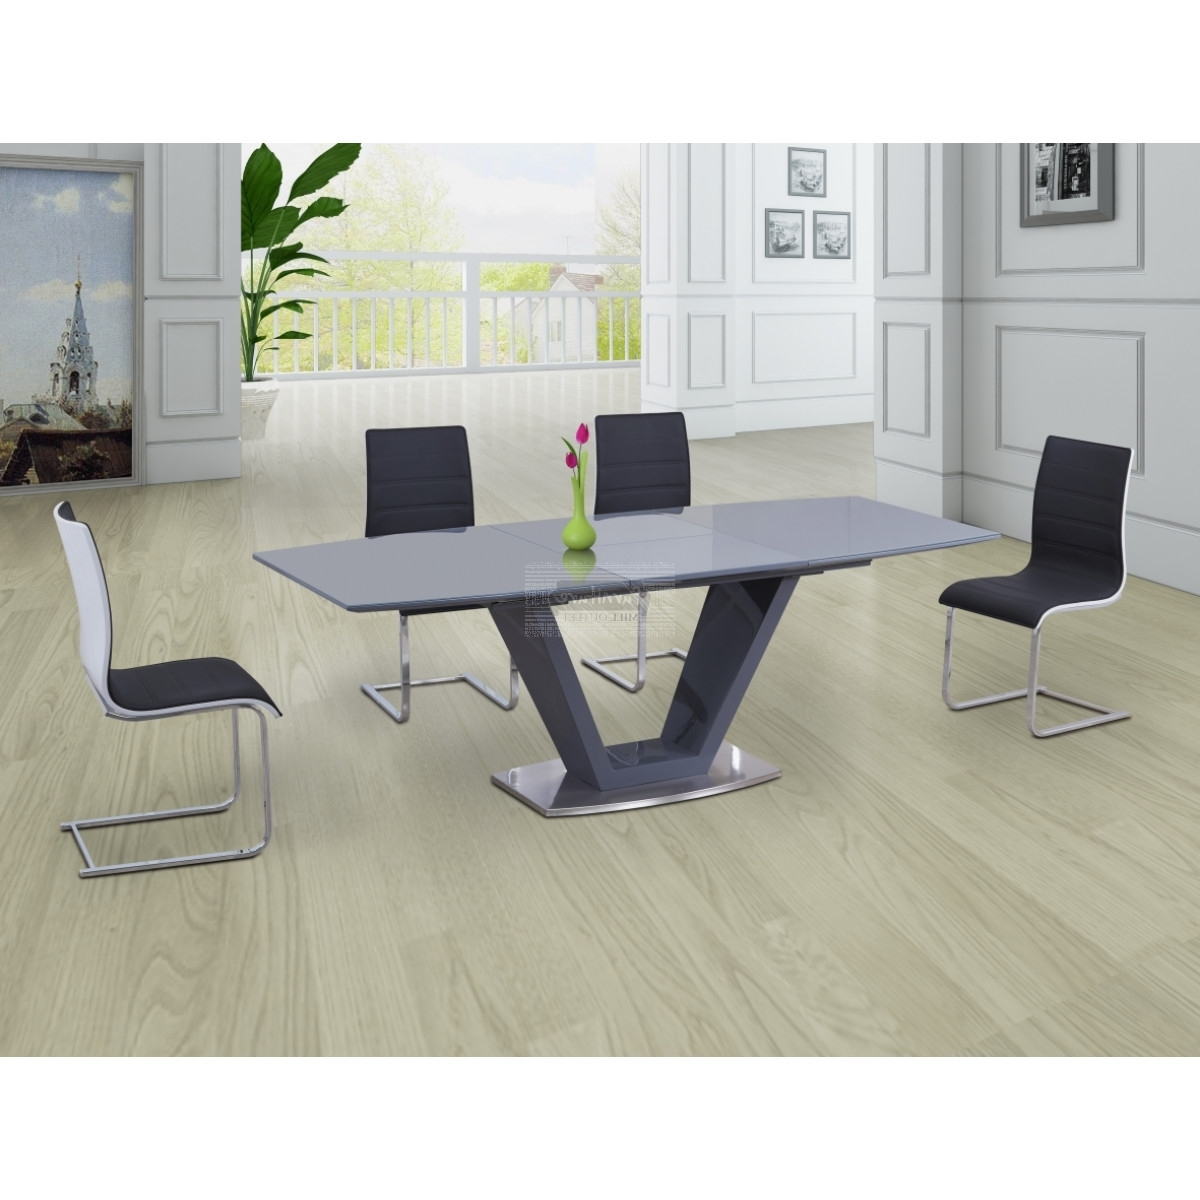 Trendy High Gloss Extending Dining Tables Within Lorgato Grey High Gloss Extending Dining Table – 160Cm To 220Cm (View 5 of 25)